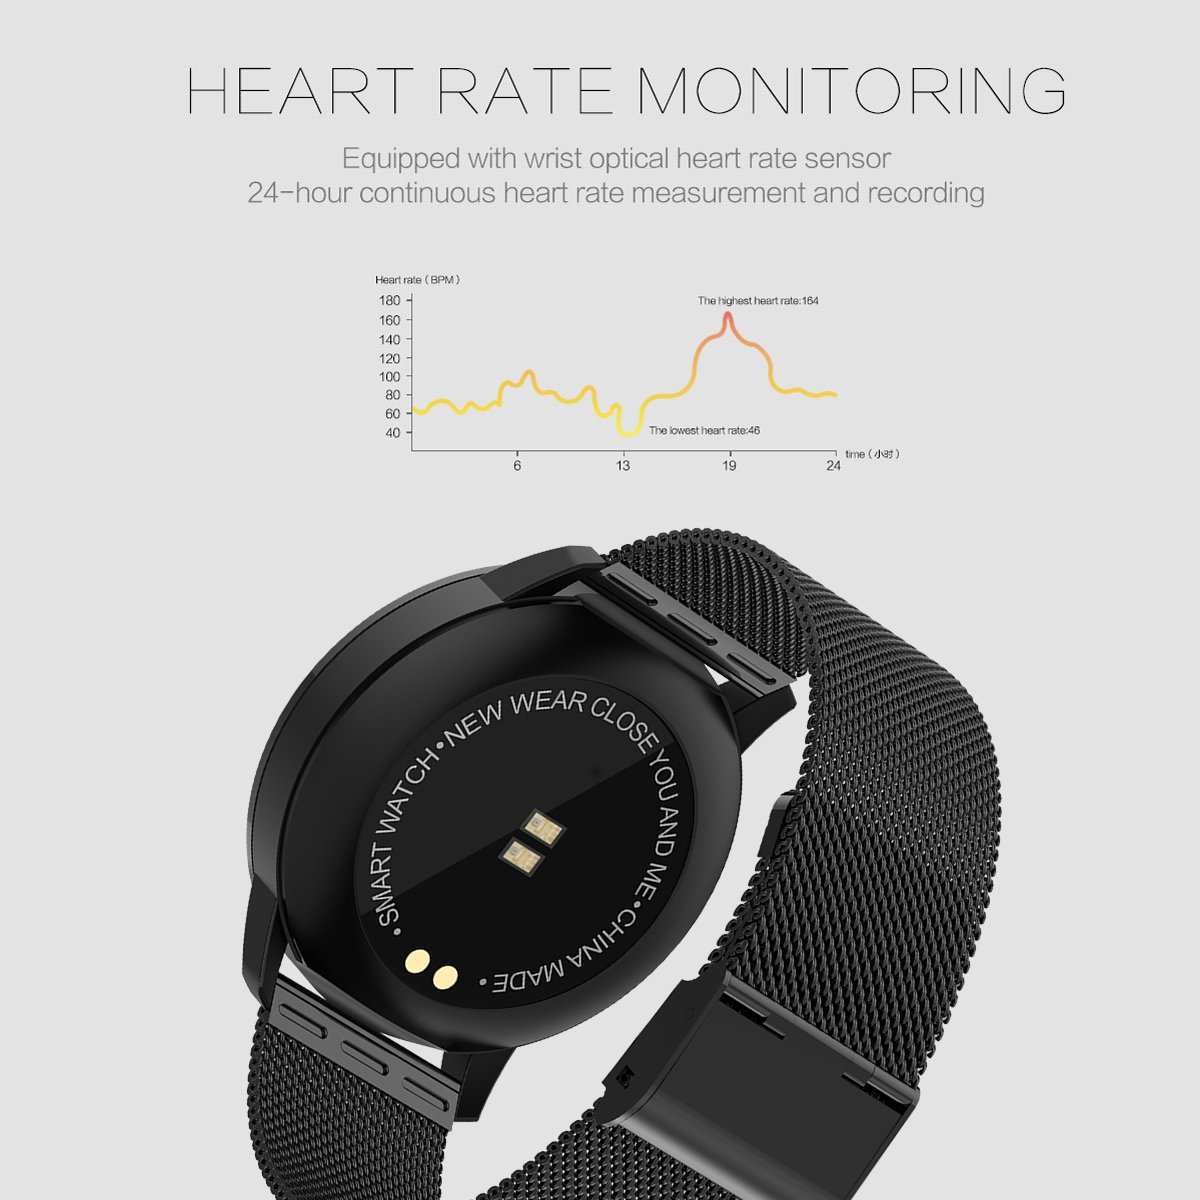 Amazon.com: Fitness Tracker Bluetooth Smart Watch Heart Rate Blood Pressure Pedometer Calorie Activity Tracker: Watches